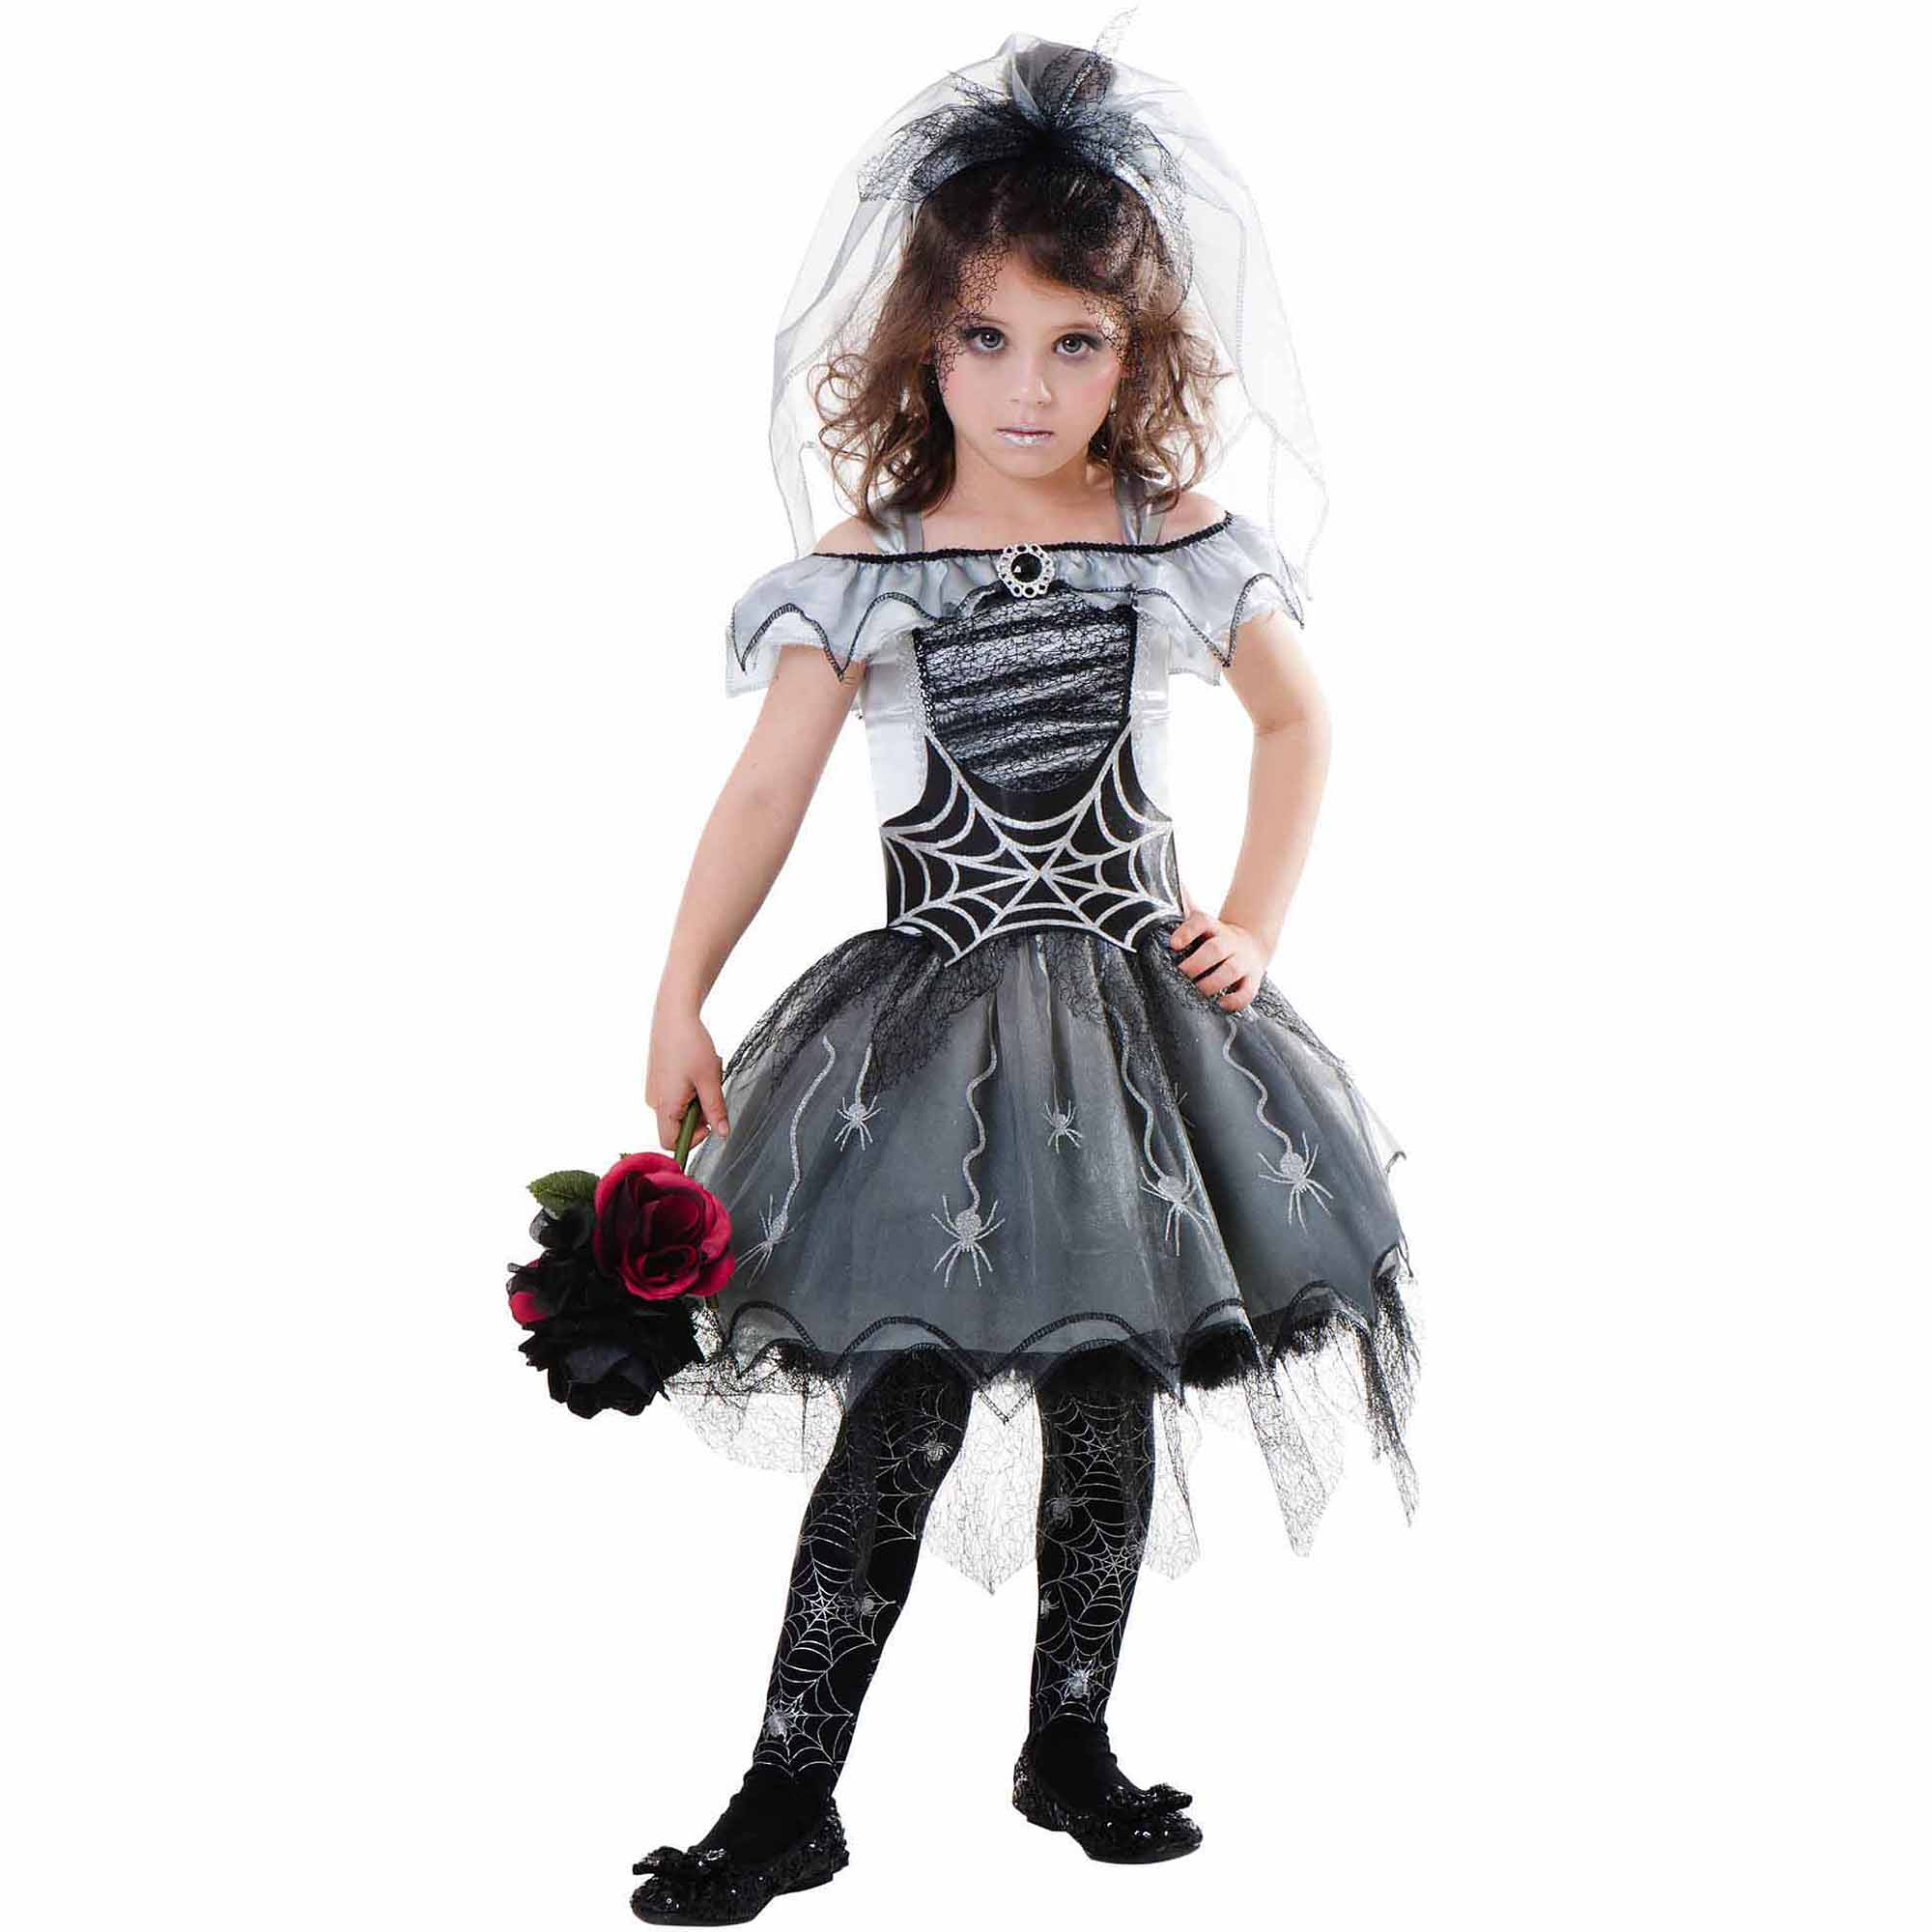 wedding dresses costumes wedding dress halloween costume Gothic Wedding Dress Costume Ideas